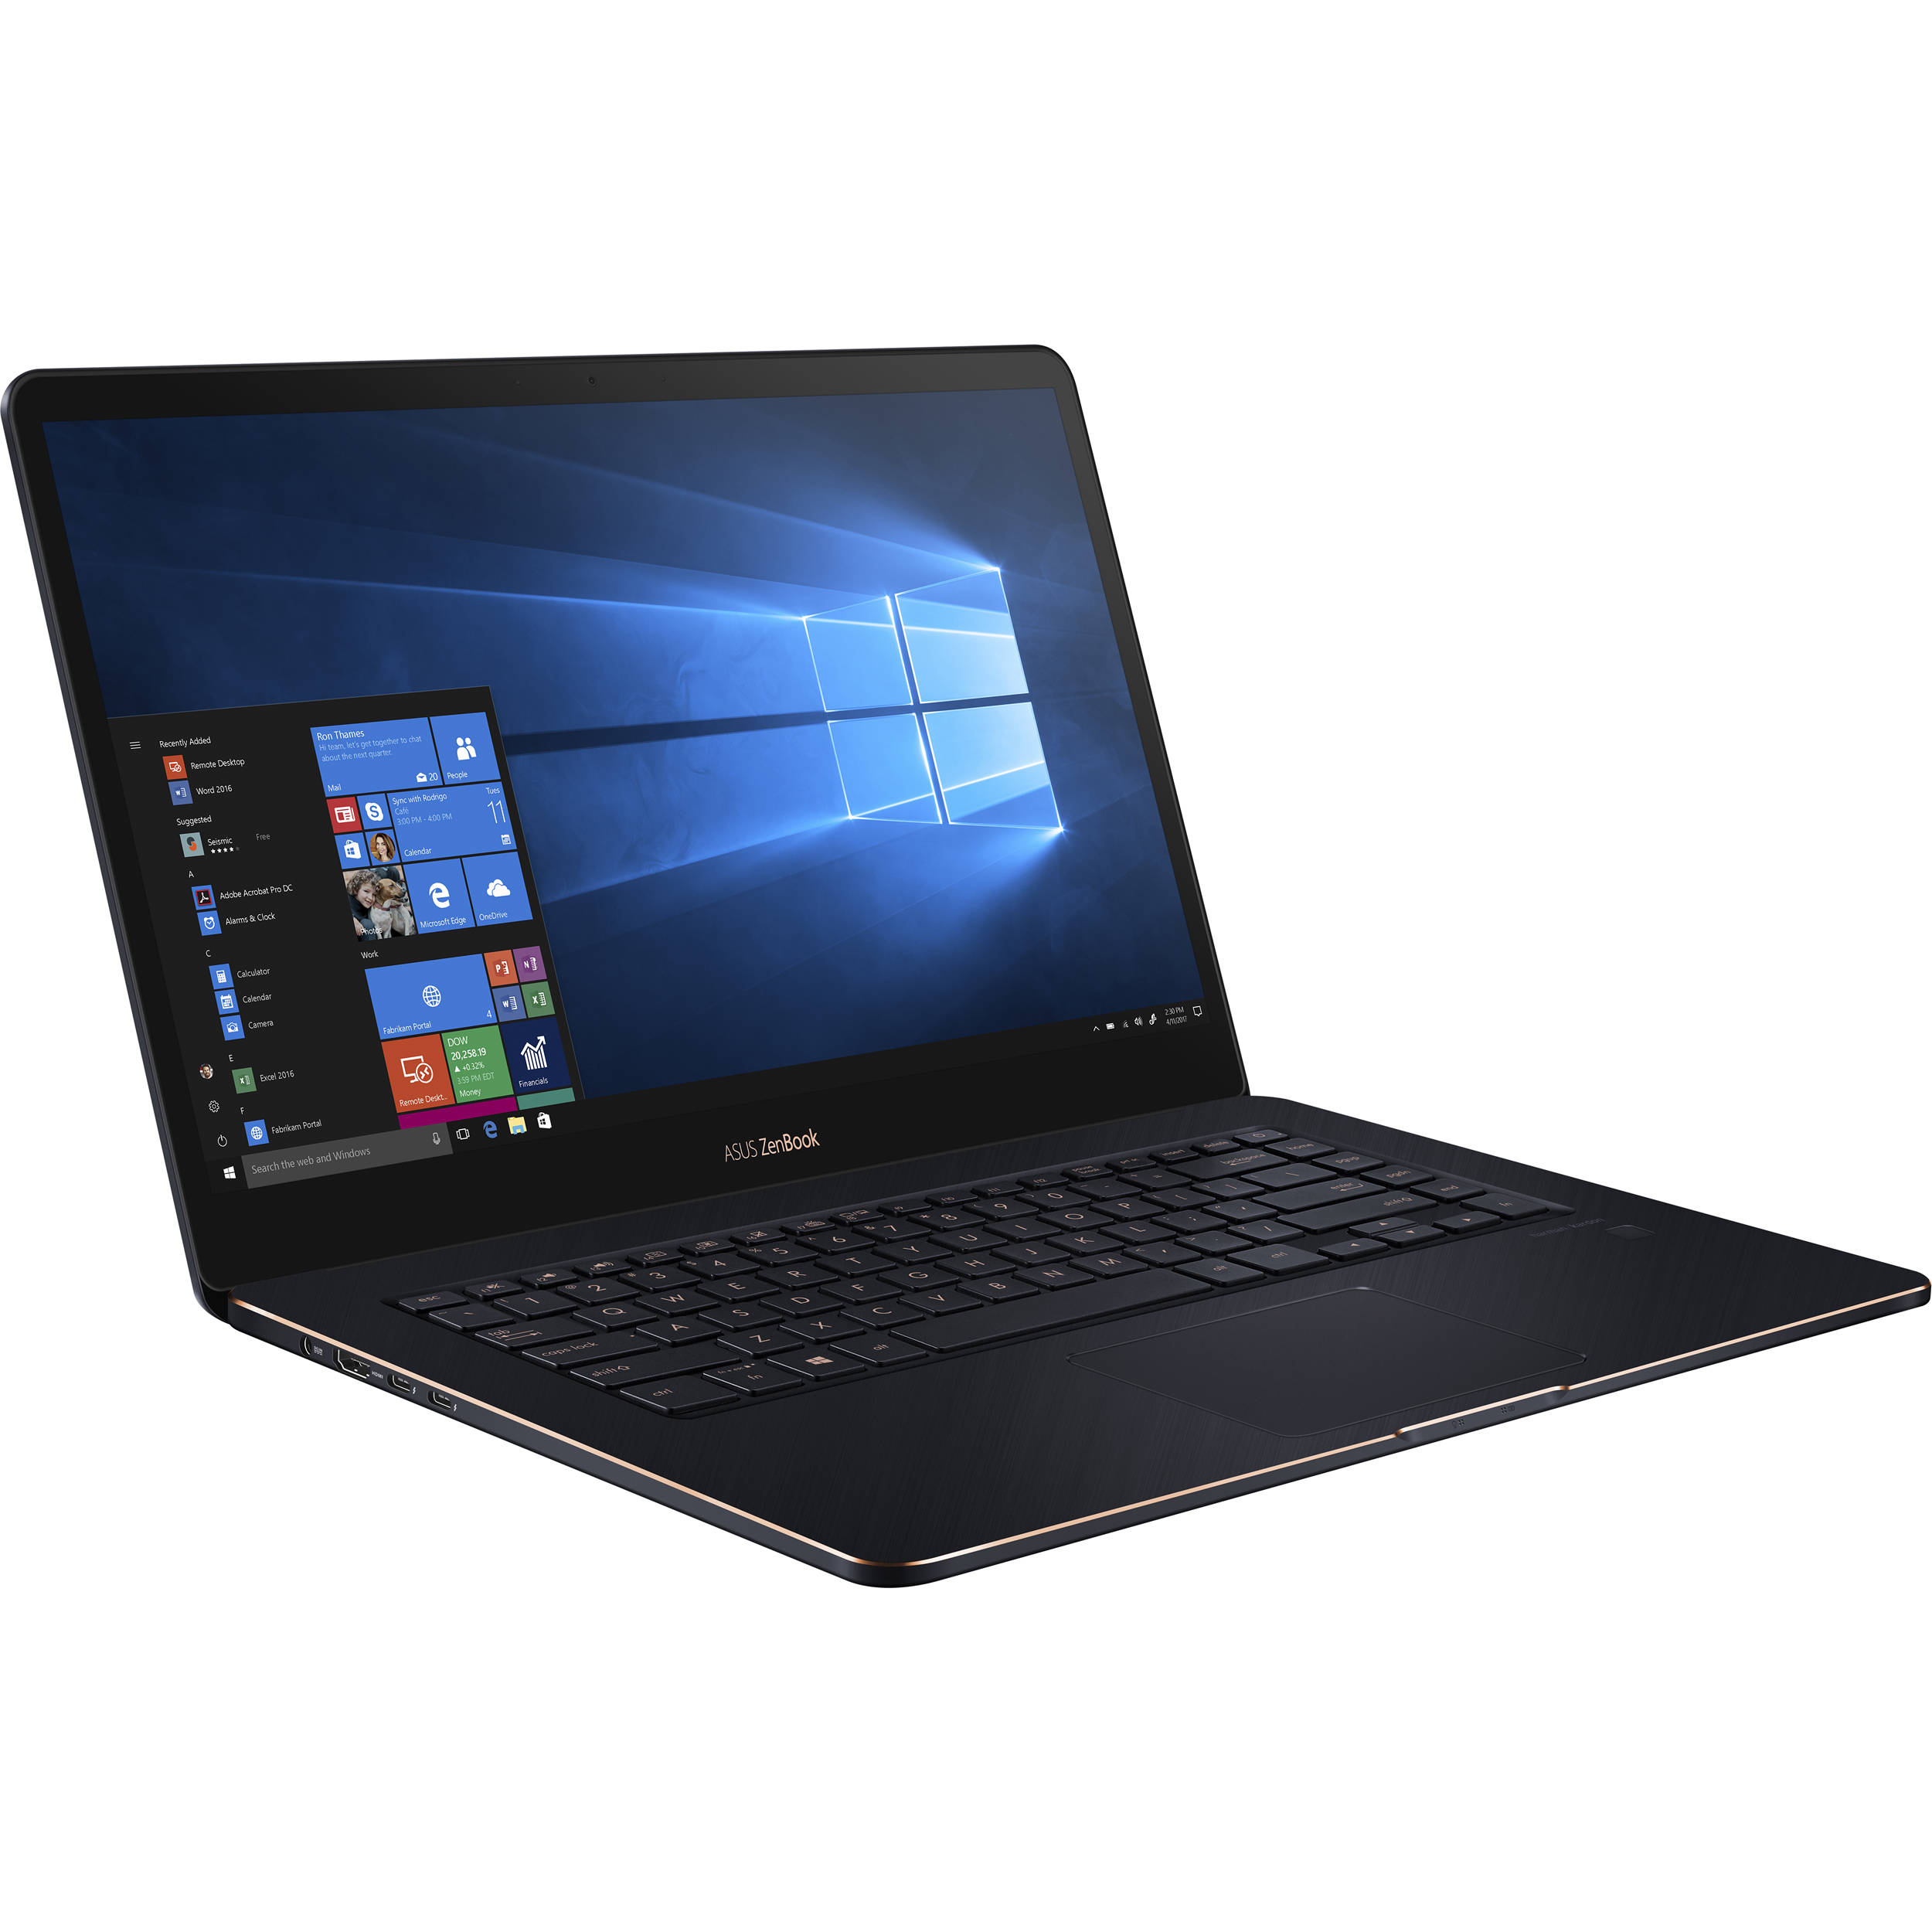 asus laptop upgrade to windows 10 pro